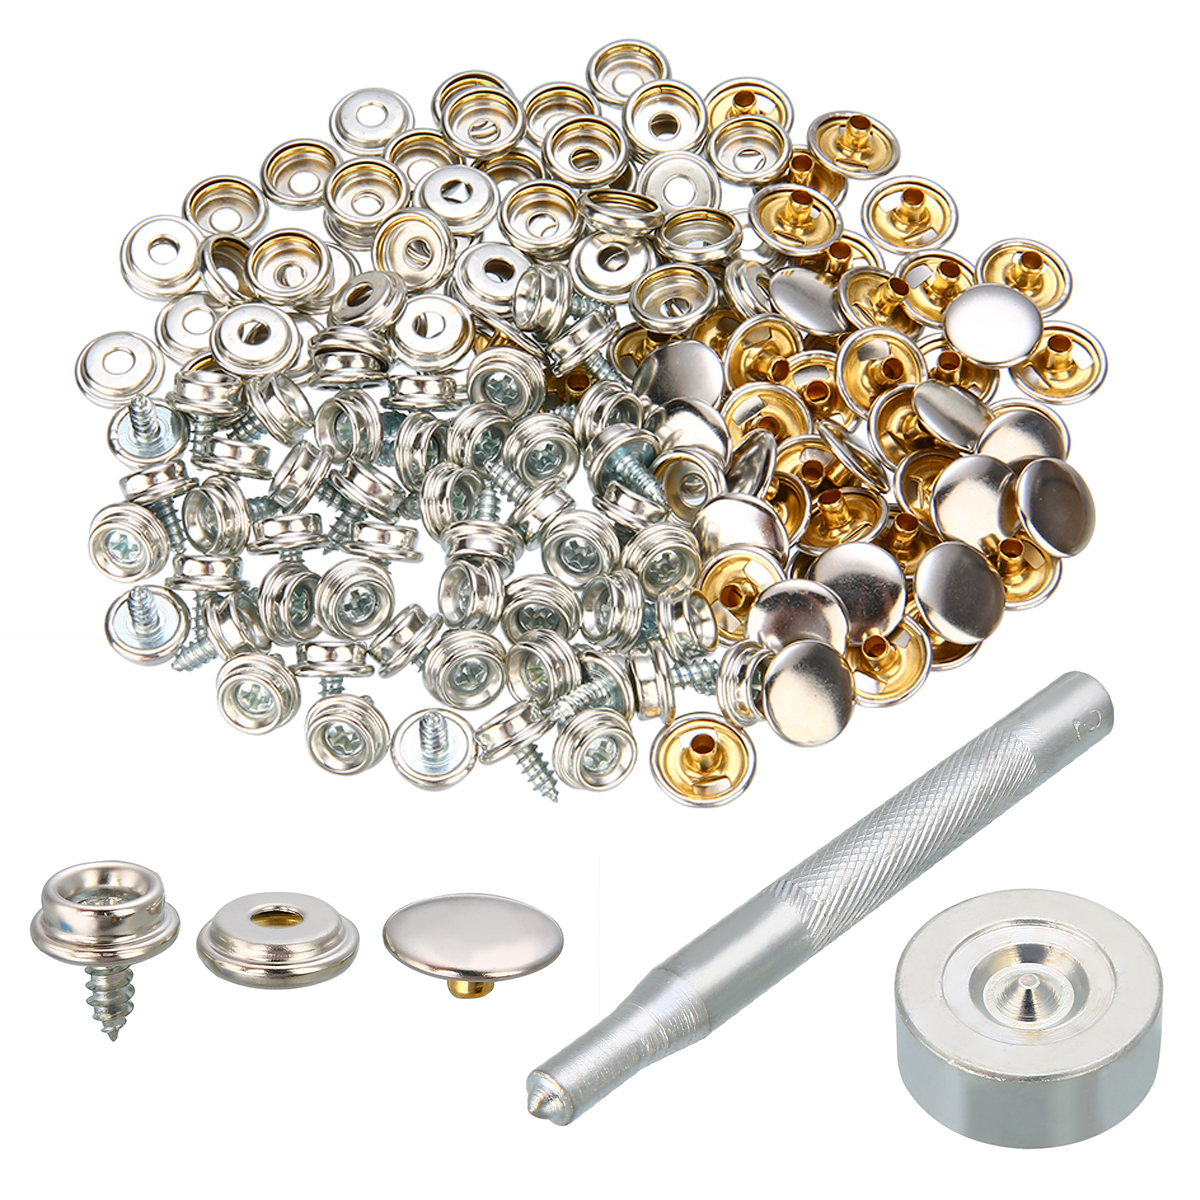 Mayitr 50 Set Snap Fastener Kits Cap Socket Stainless Steel